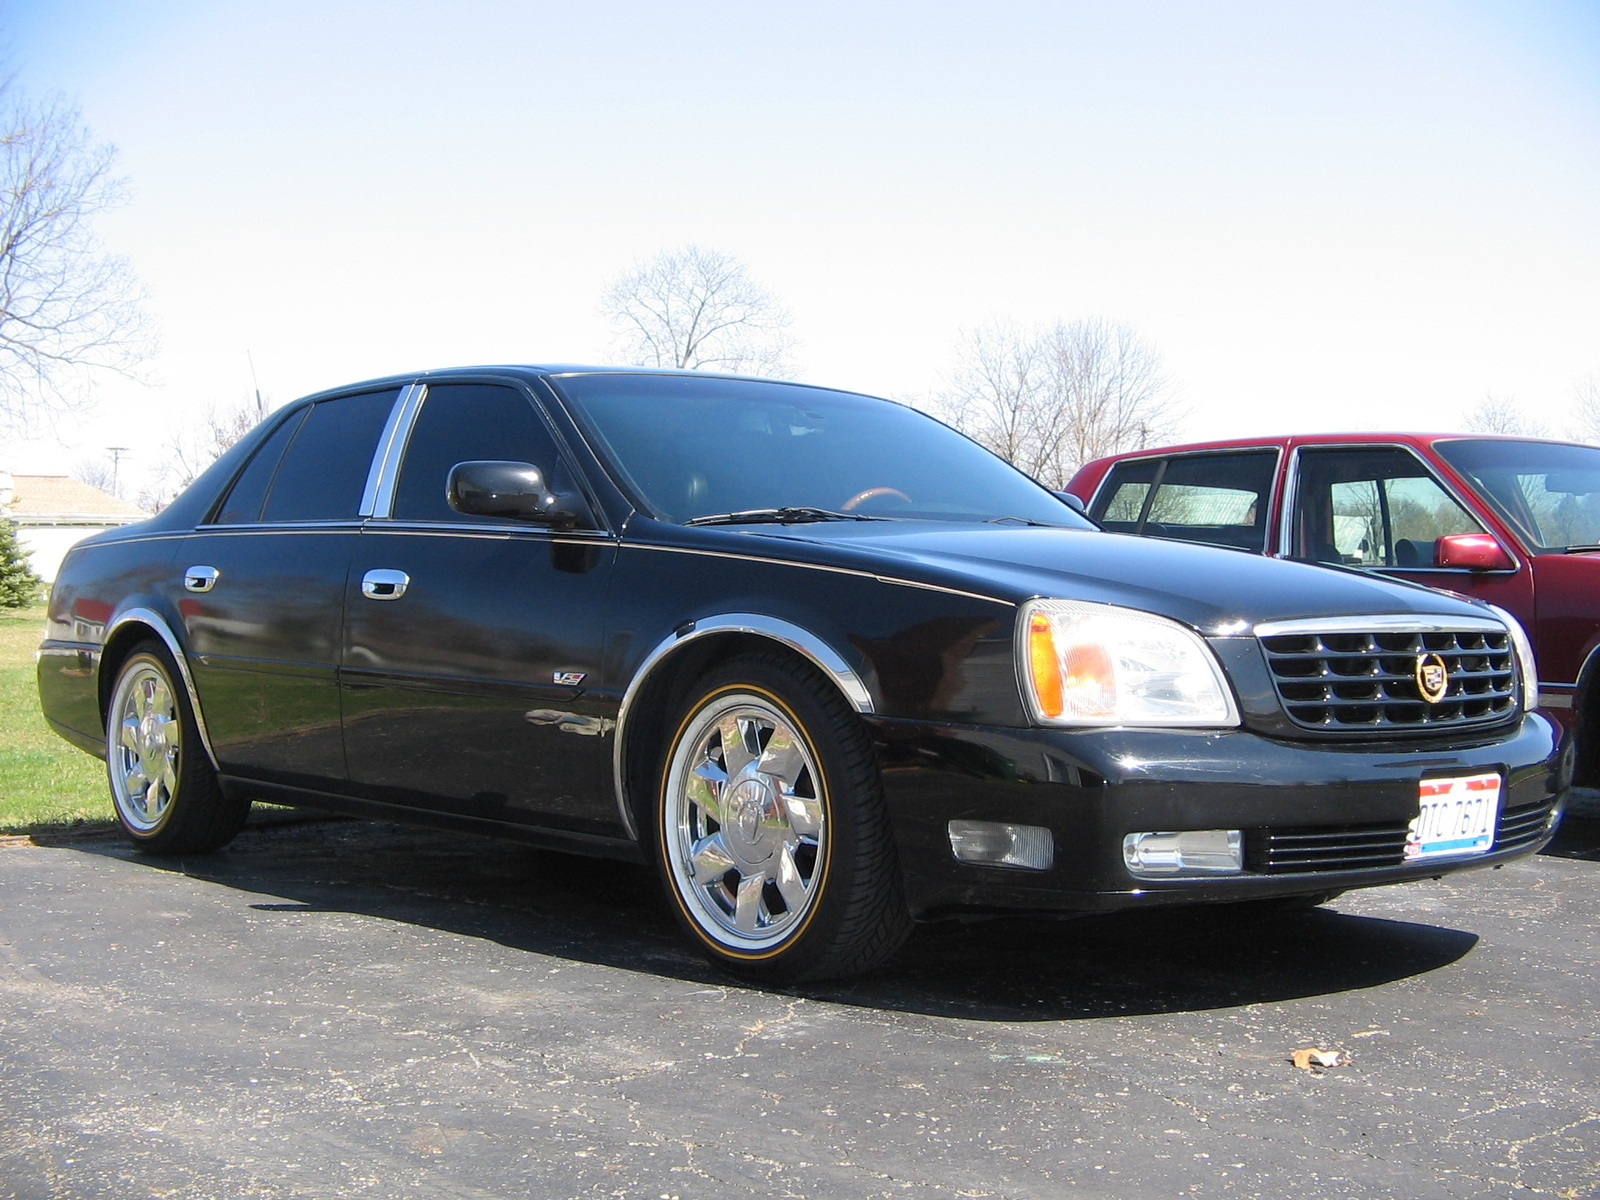 2002 Cadillac Deville - Overview